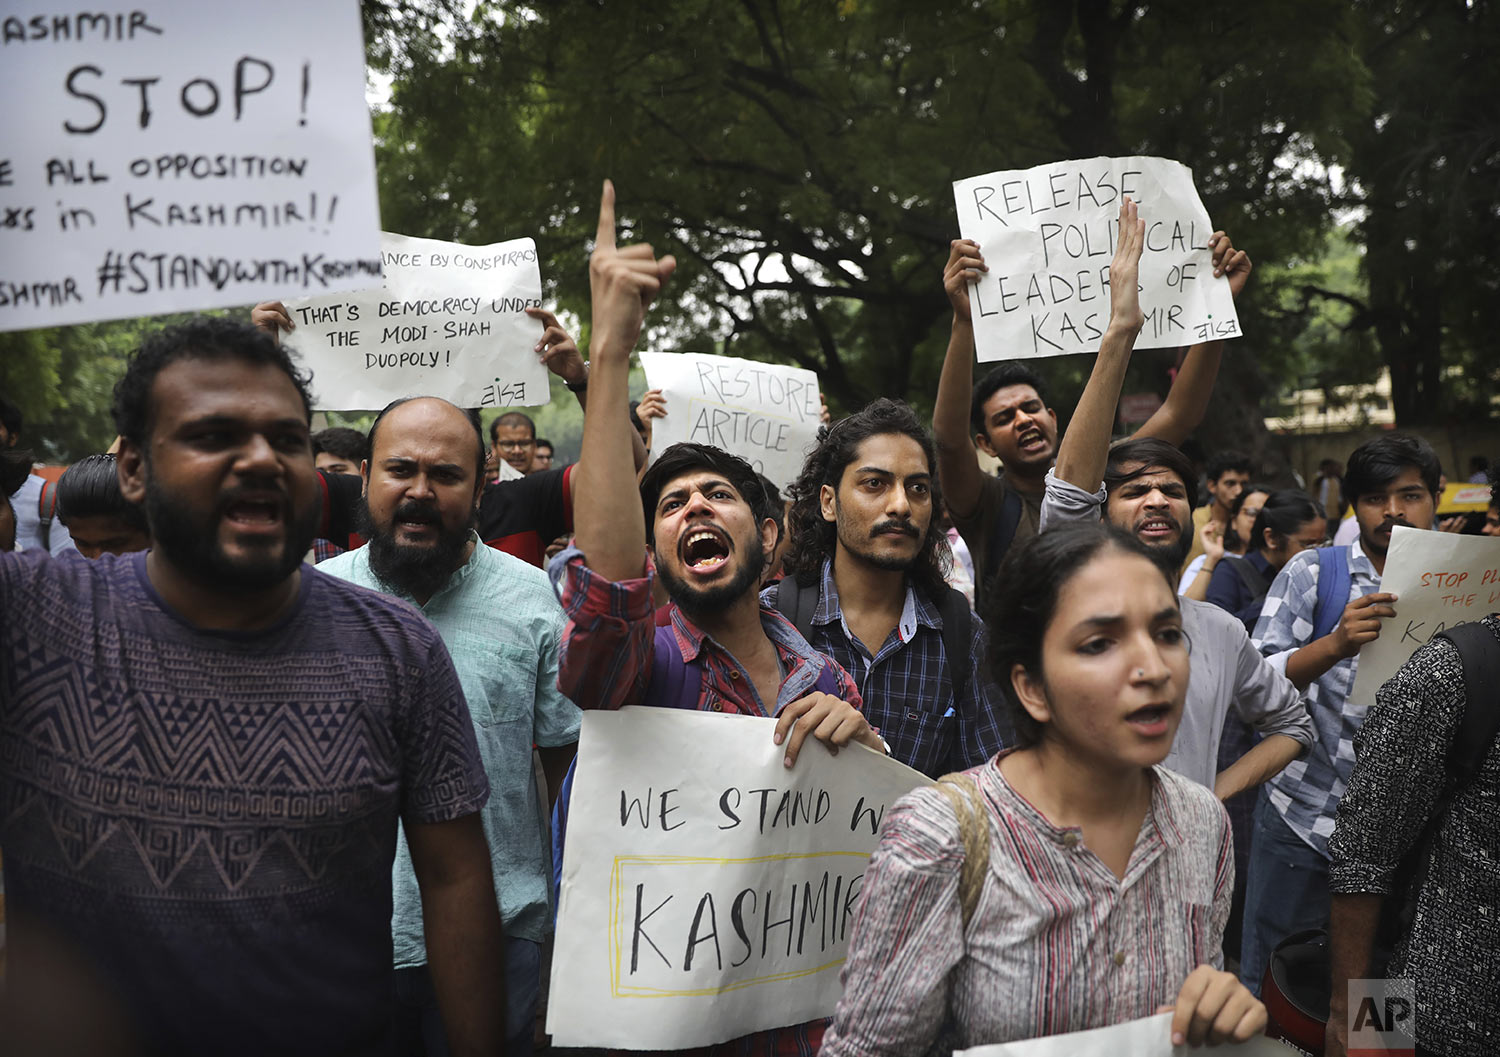 Left party supporters and students shout slogans during a protest against Indian government revoking Kashmir's special constitutional status in New Delhi, India, Monday, Aug. 5, 2019. (AP Photo/Manish Swarup)